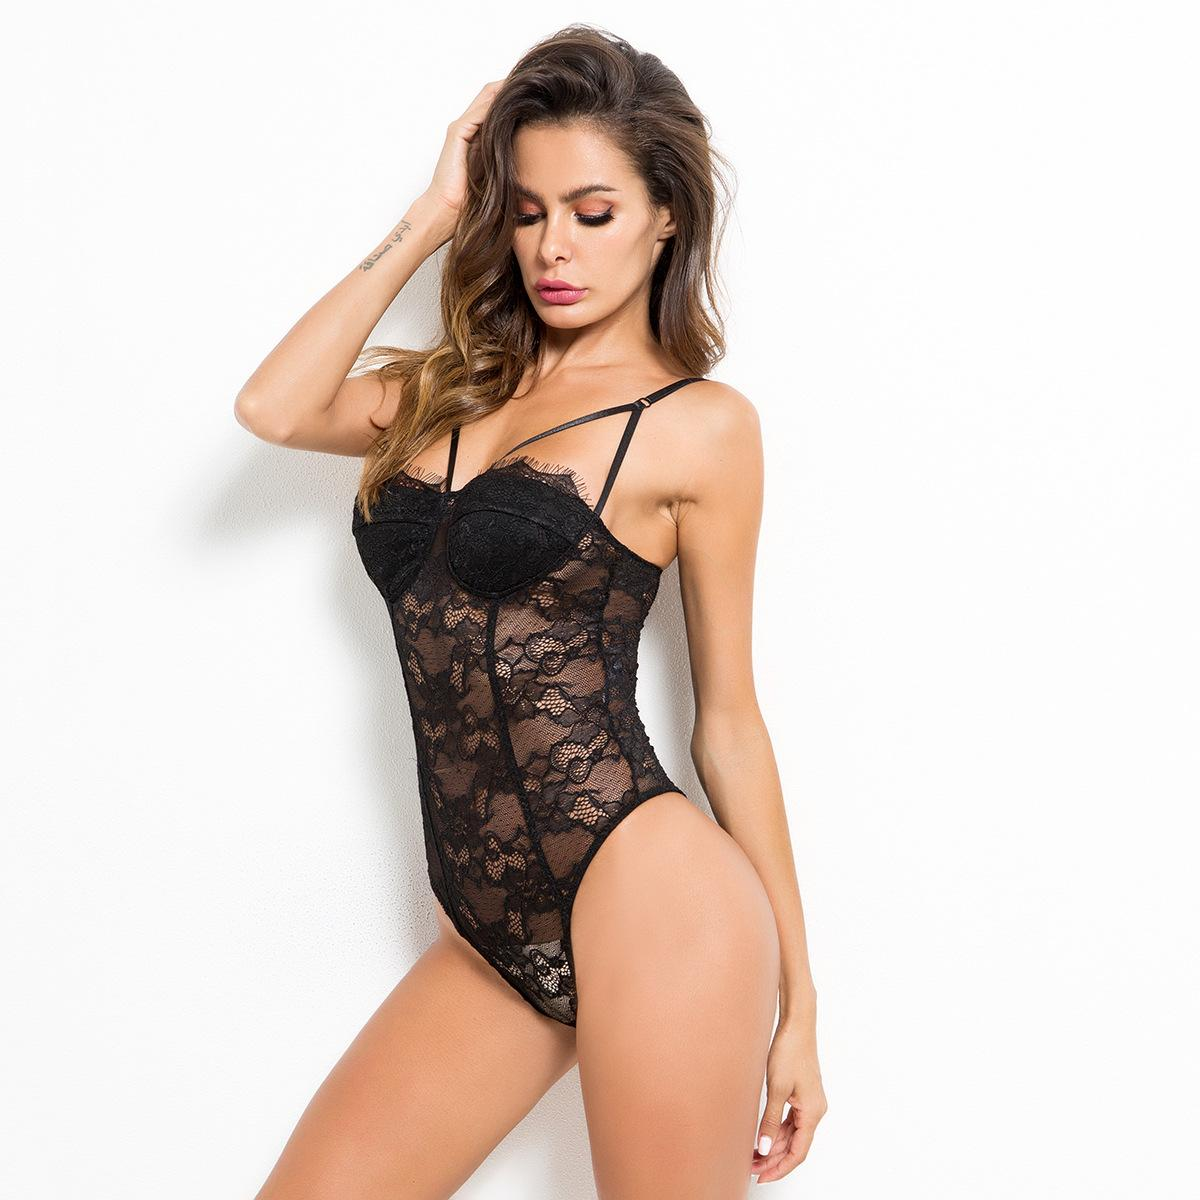 25f5f9c4718 New Women s Lace Sexy Bodysuit 1 2 Open Bra Floral Lace Erotic Teddy  Lingerie for Ladies See-through Strap Sexy Underwear